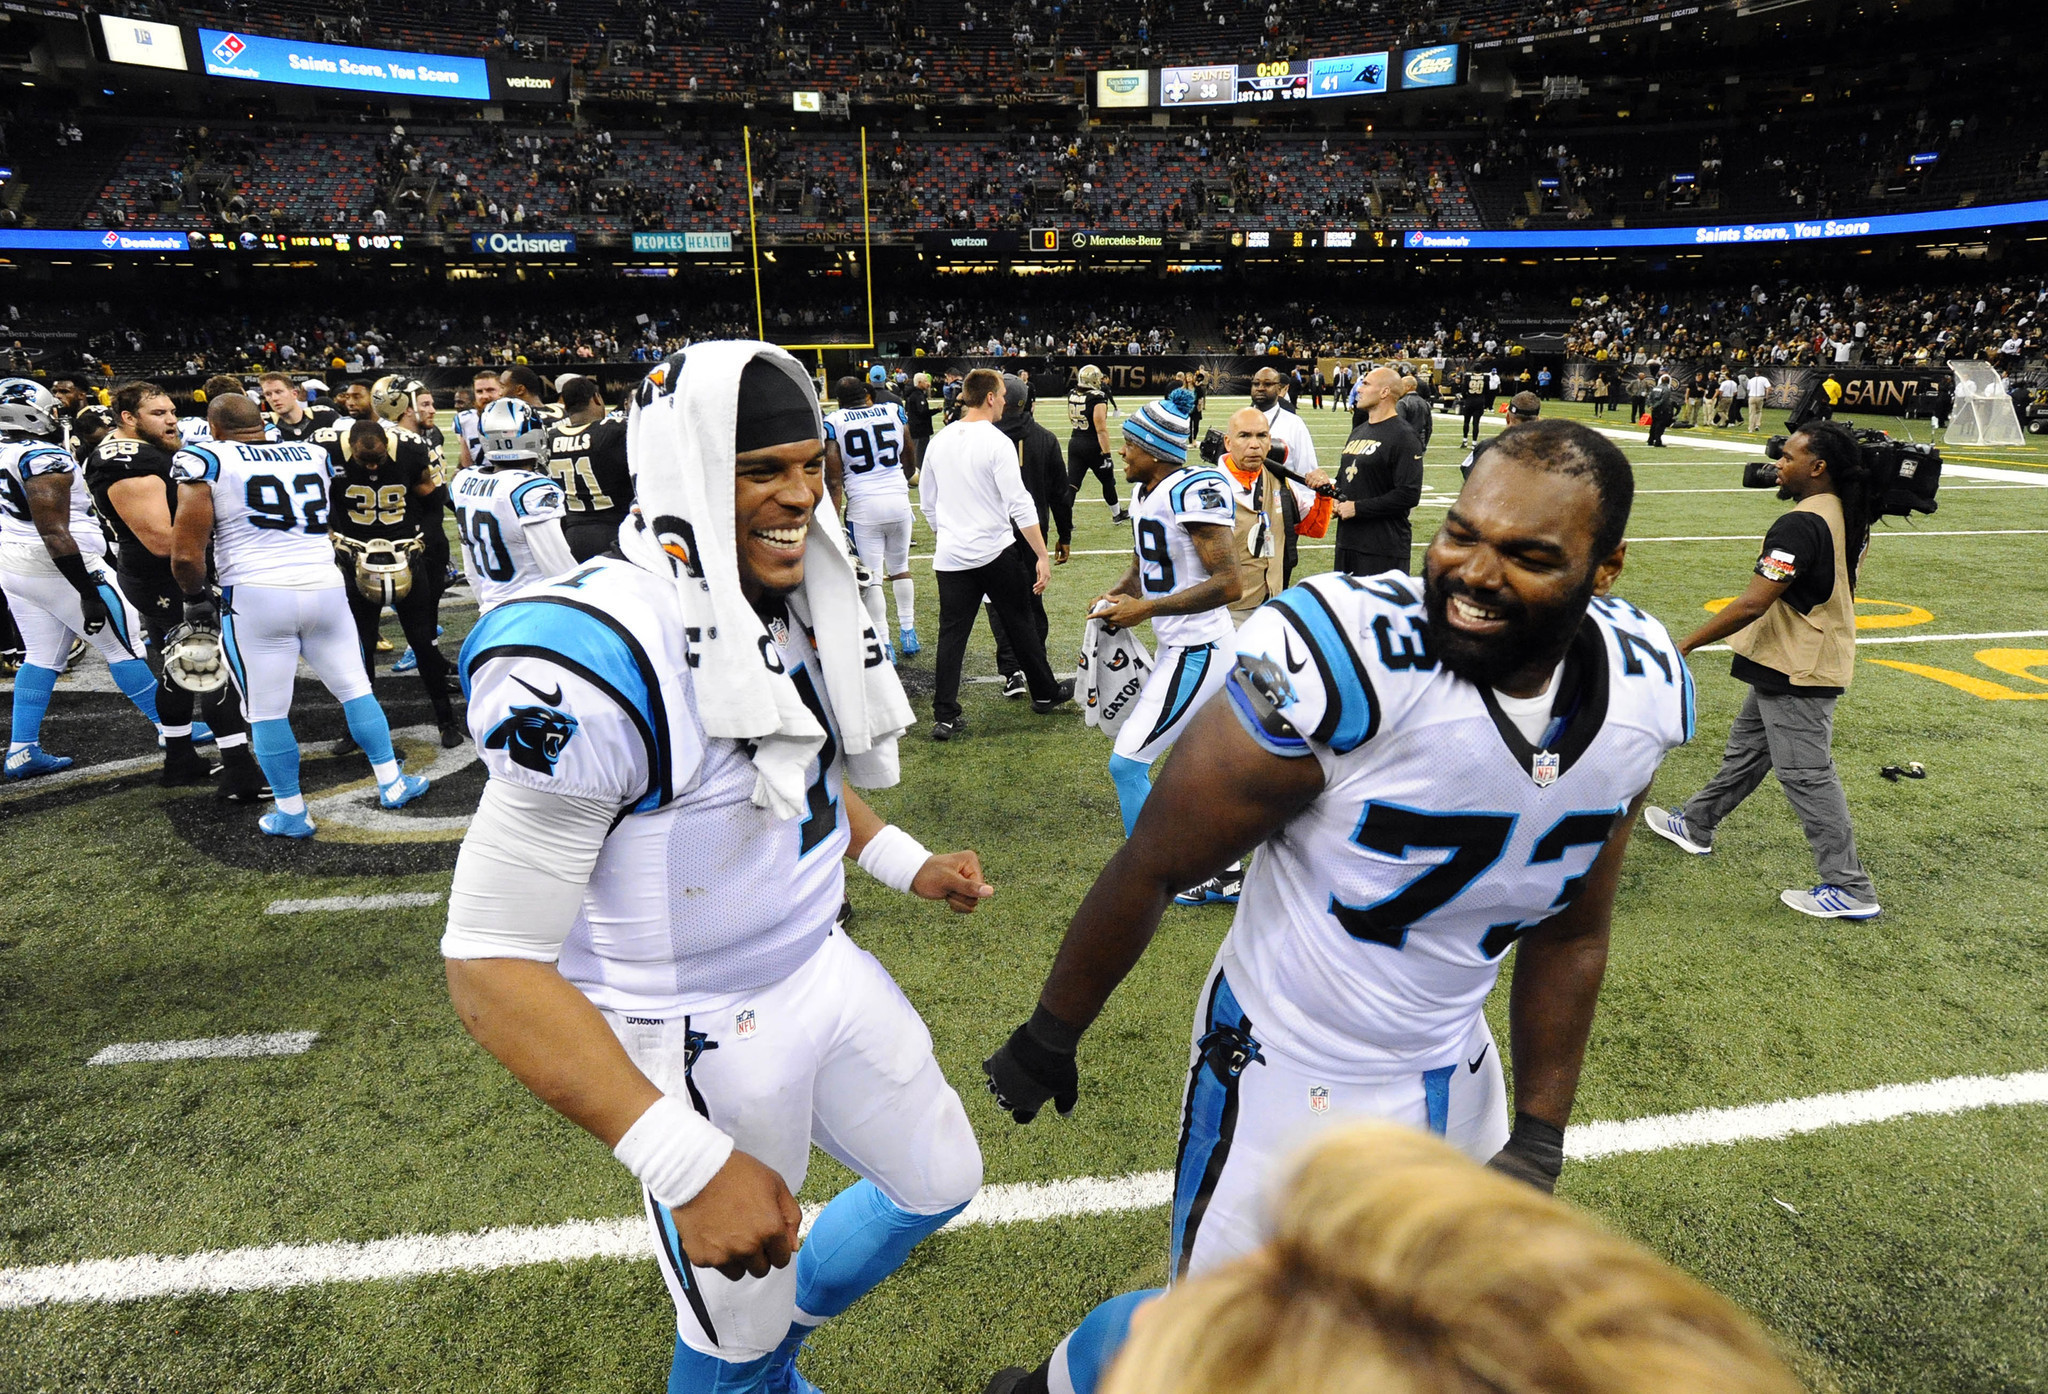 Bal-michael-oher-signs-three-year-extension-with-carolina-panthers-20160617